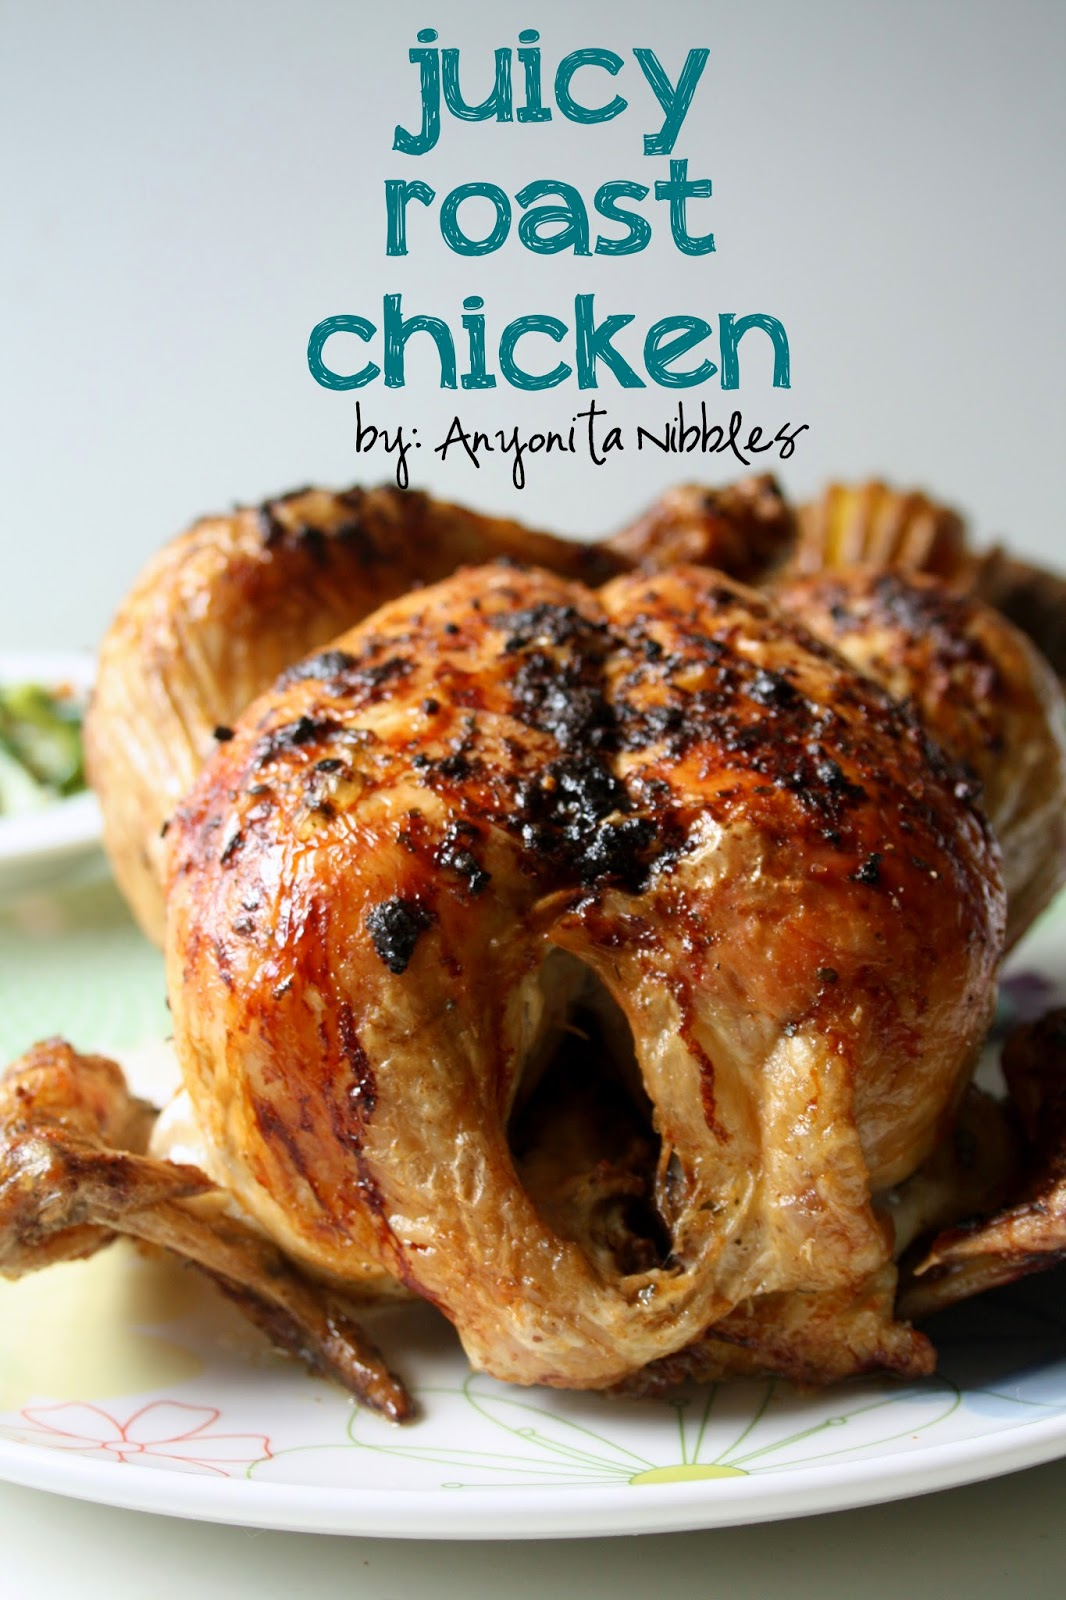 Juicy Roast Chicken for Mother's Day | Anyonita Nibbles